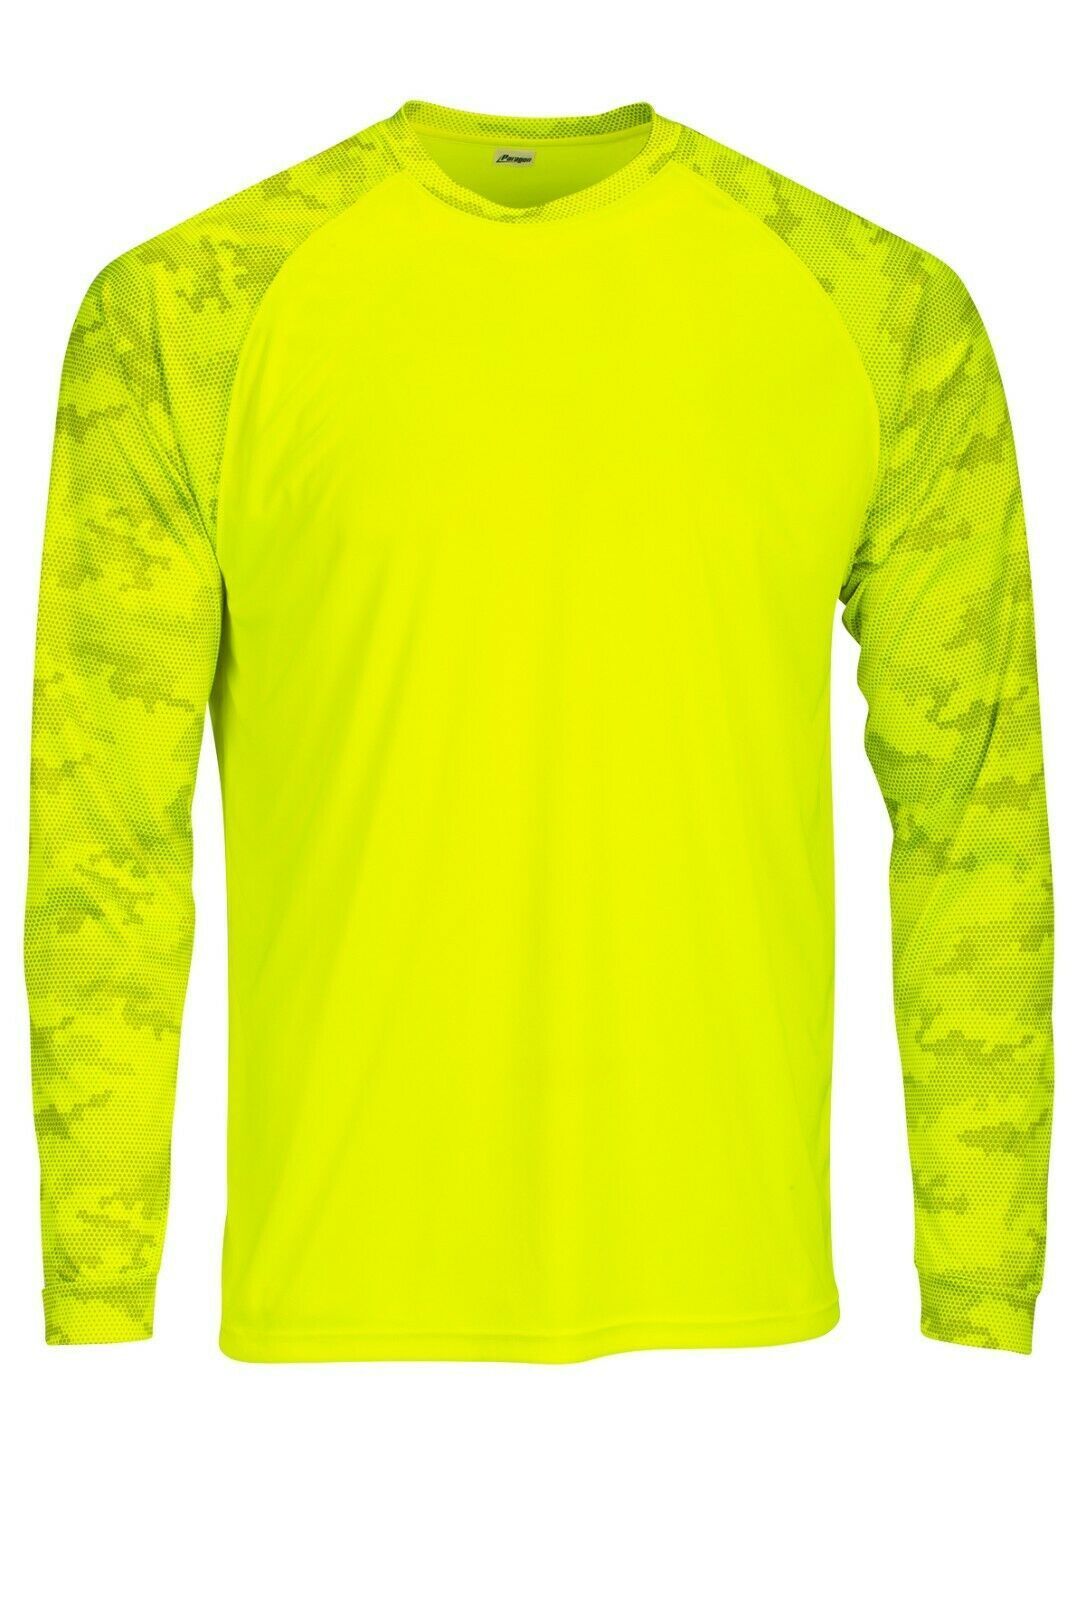 Sun Protection Long Sleeve Dri Fit Safety Neon Green shirt Camo Sleeve SPF 50+